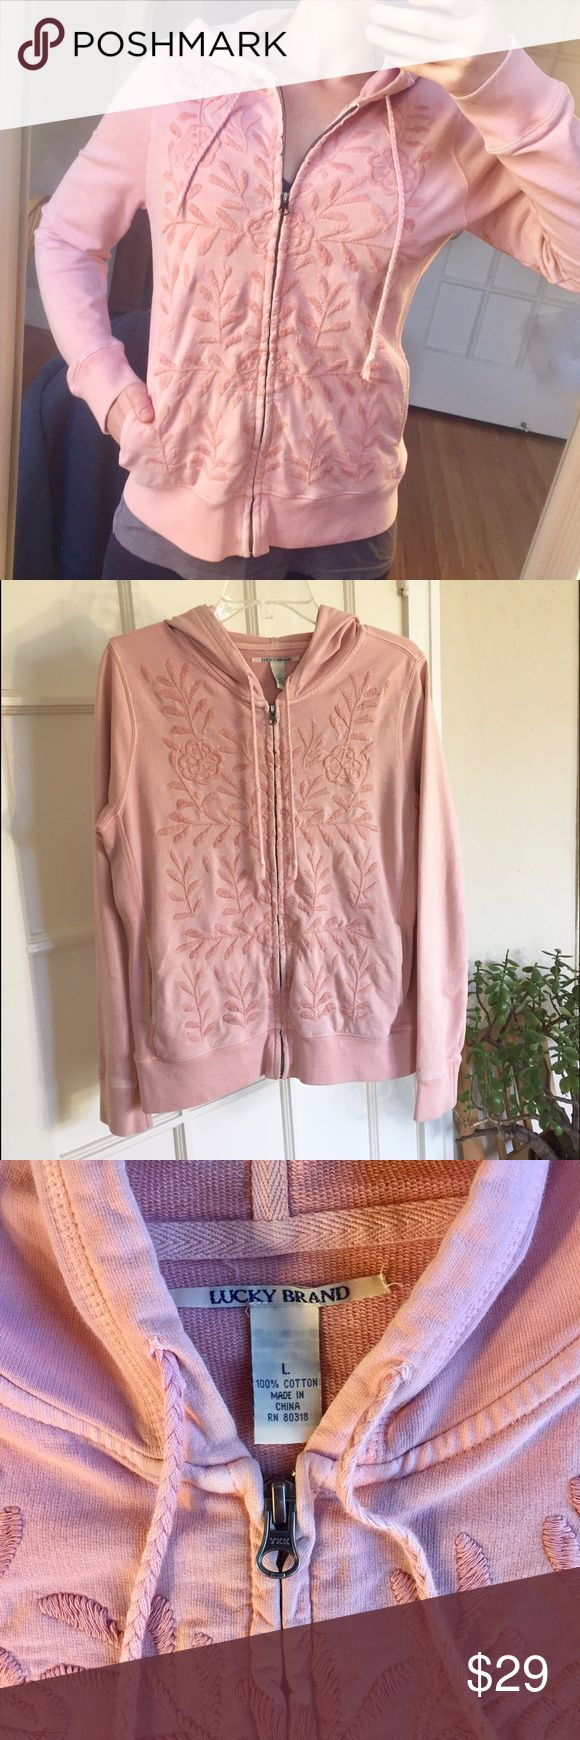 Lucky Brand pale pink embroidered hoodie Beautiful light pink floral embroidered hoodie. Used- in great shape! Only one tiny pen mark (see photo). Women's size L. Lucky Brand Tops Sweatshirts & Hoodies